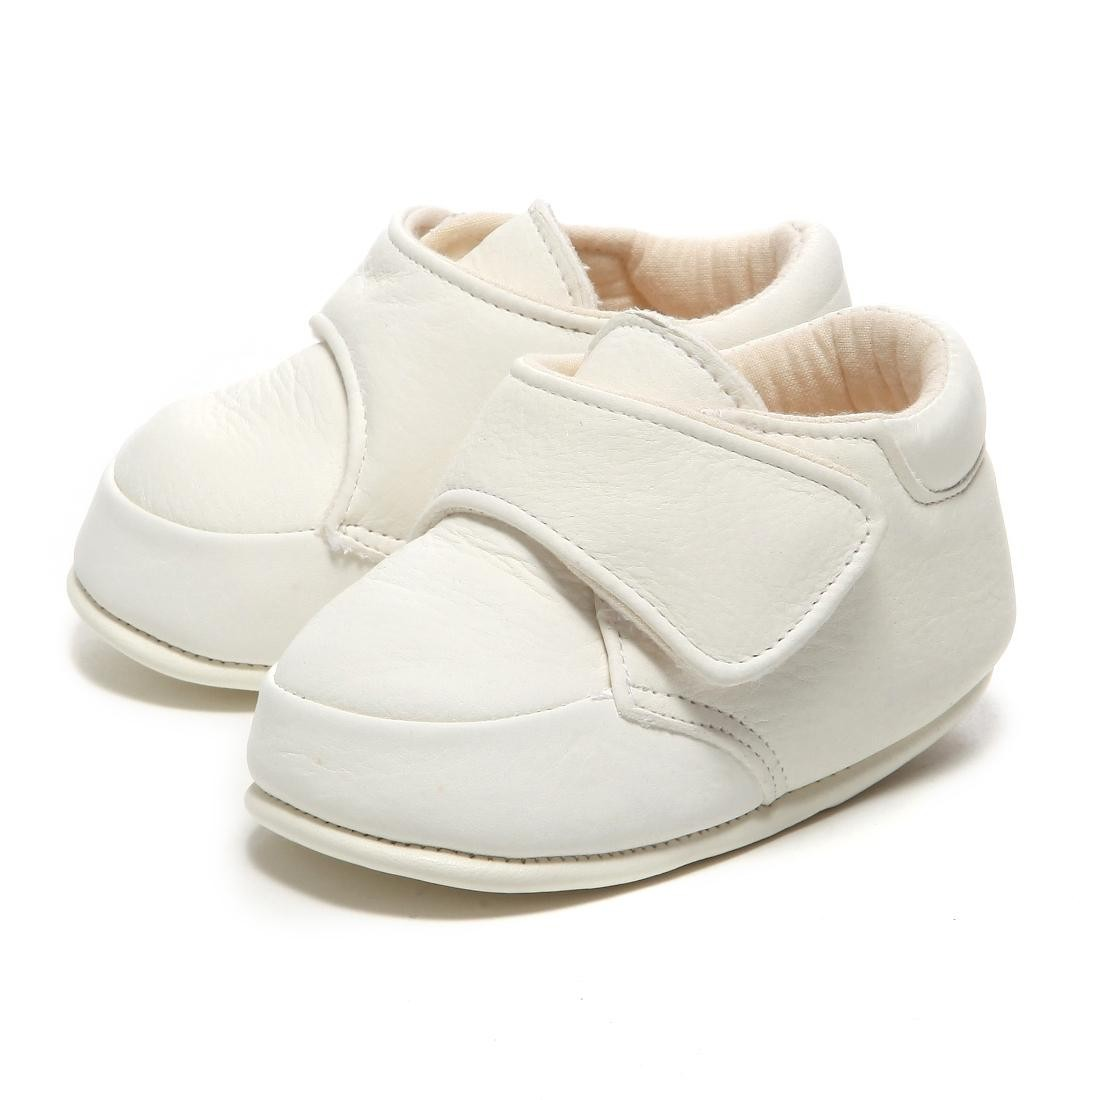 LEATHERIAN FIRST SHOES ECO LEATHER (первые шаги) белые